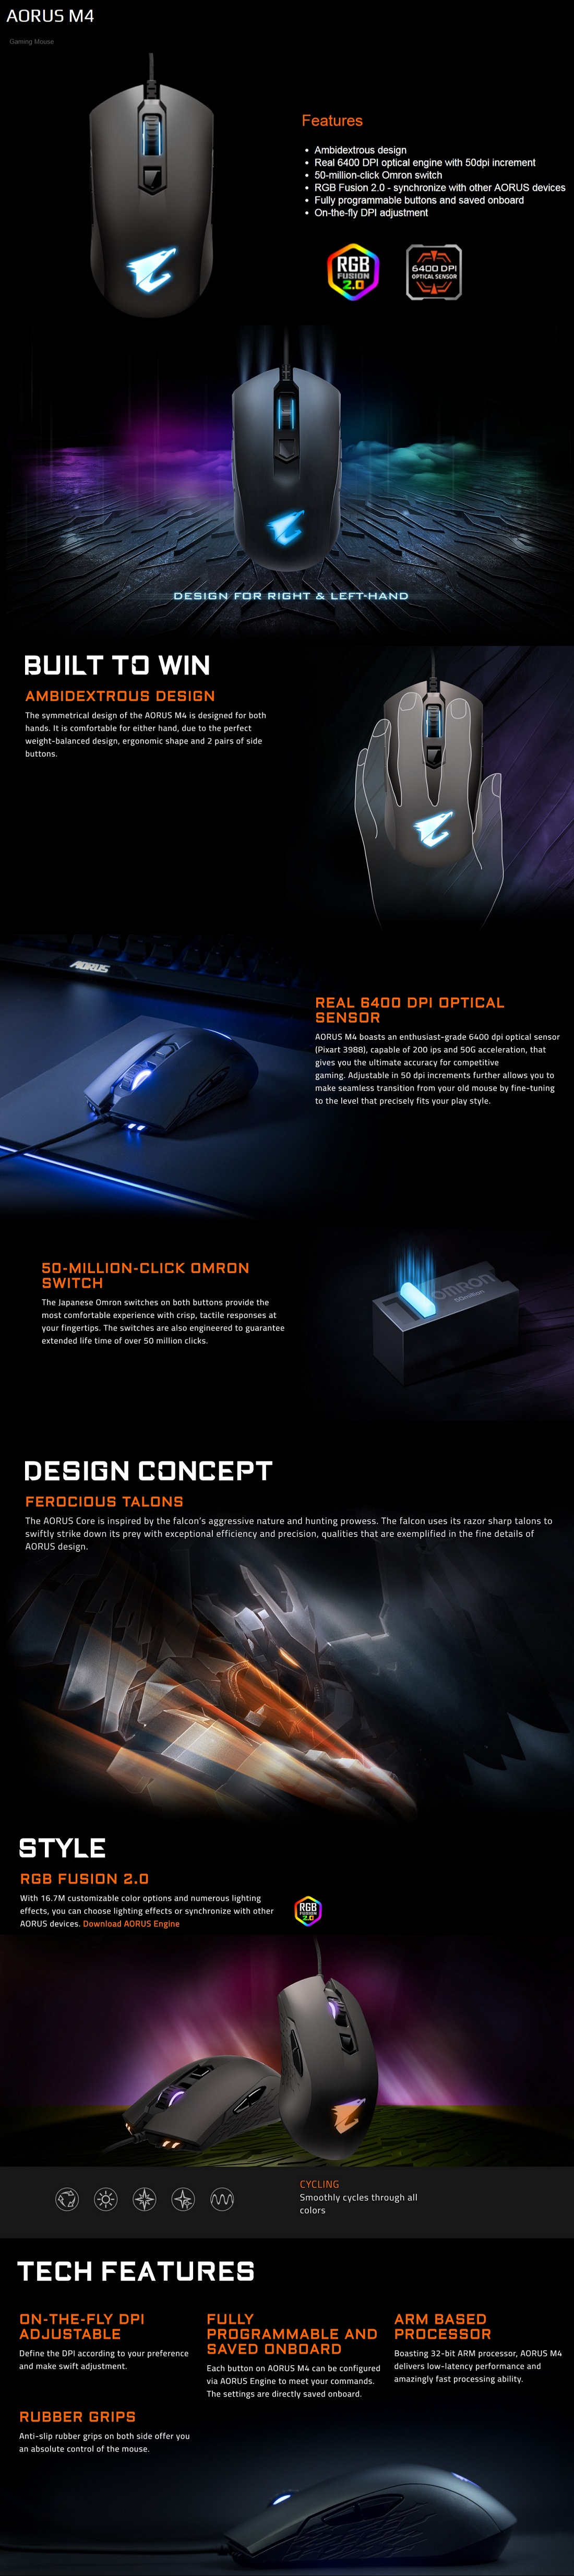 Gigabyte Aorus M4 Optical Gaming Mouse USB Wired 3D Scroll Matte Black RGB Fusion